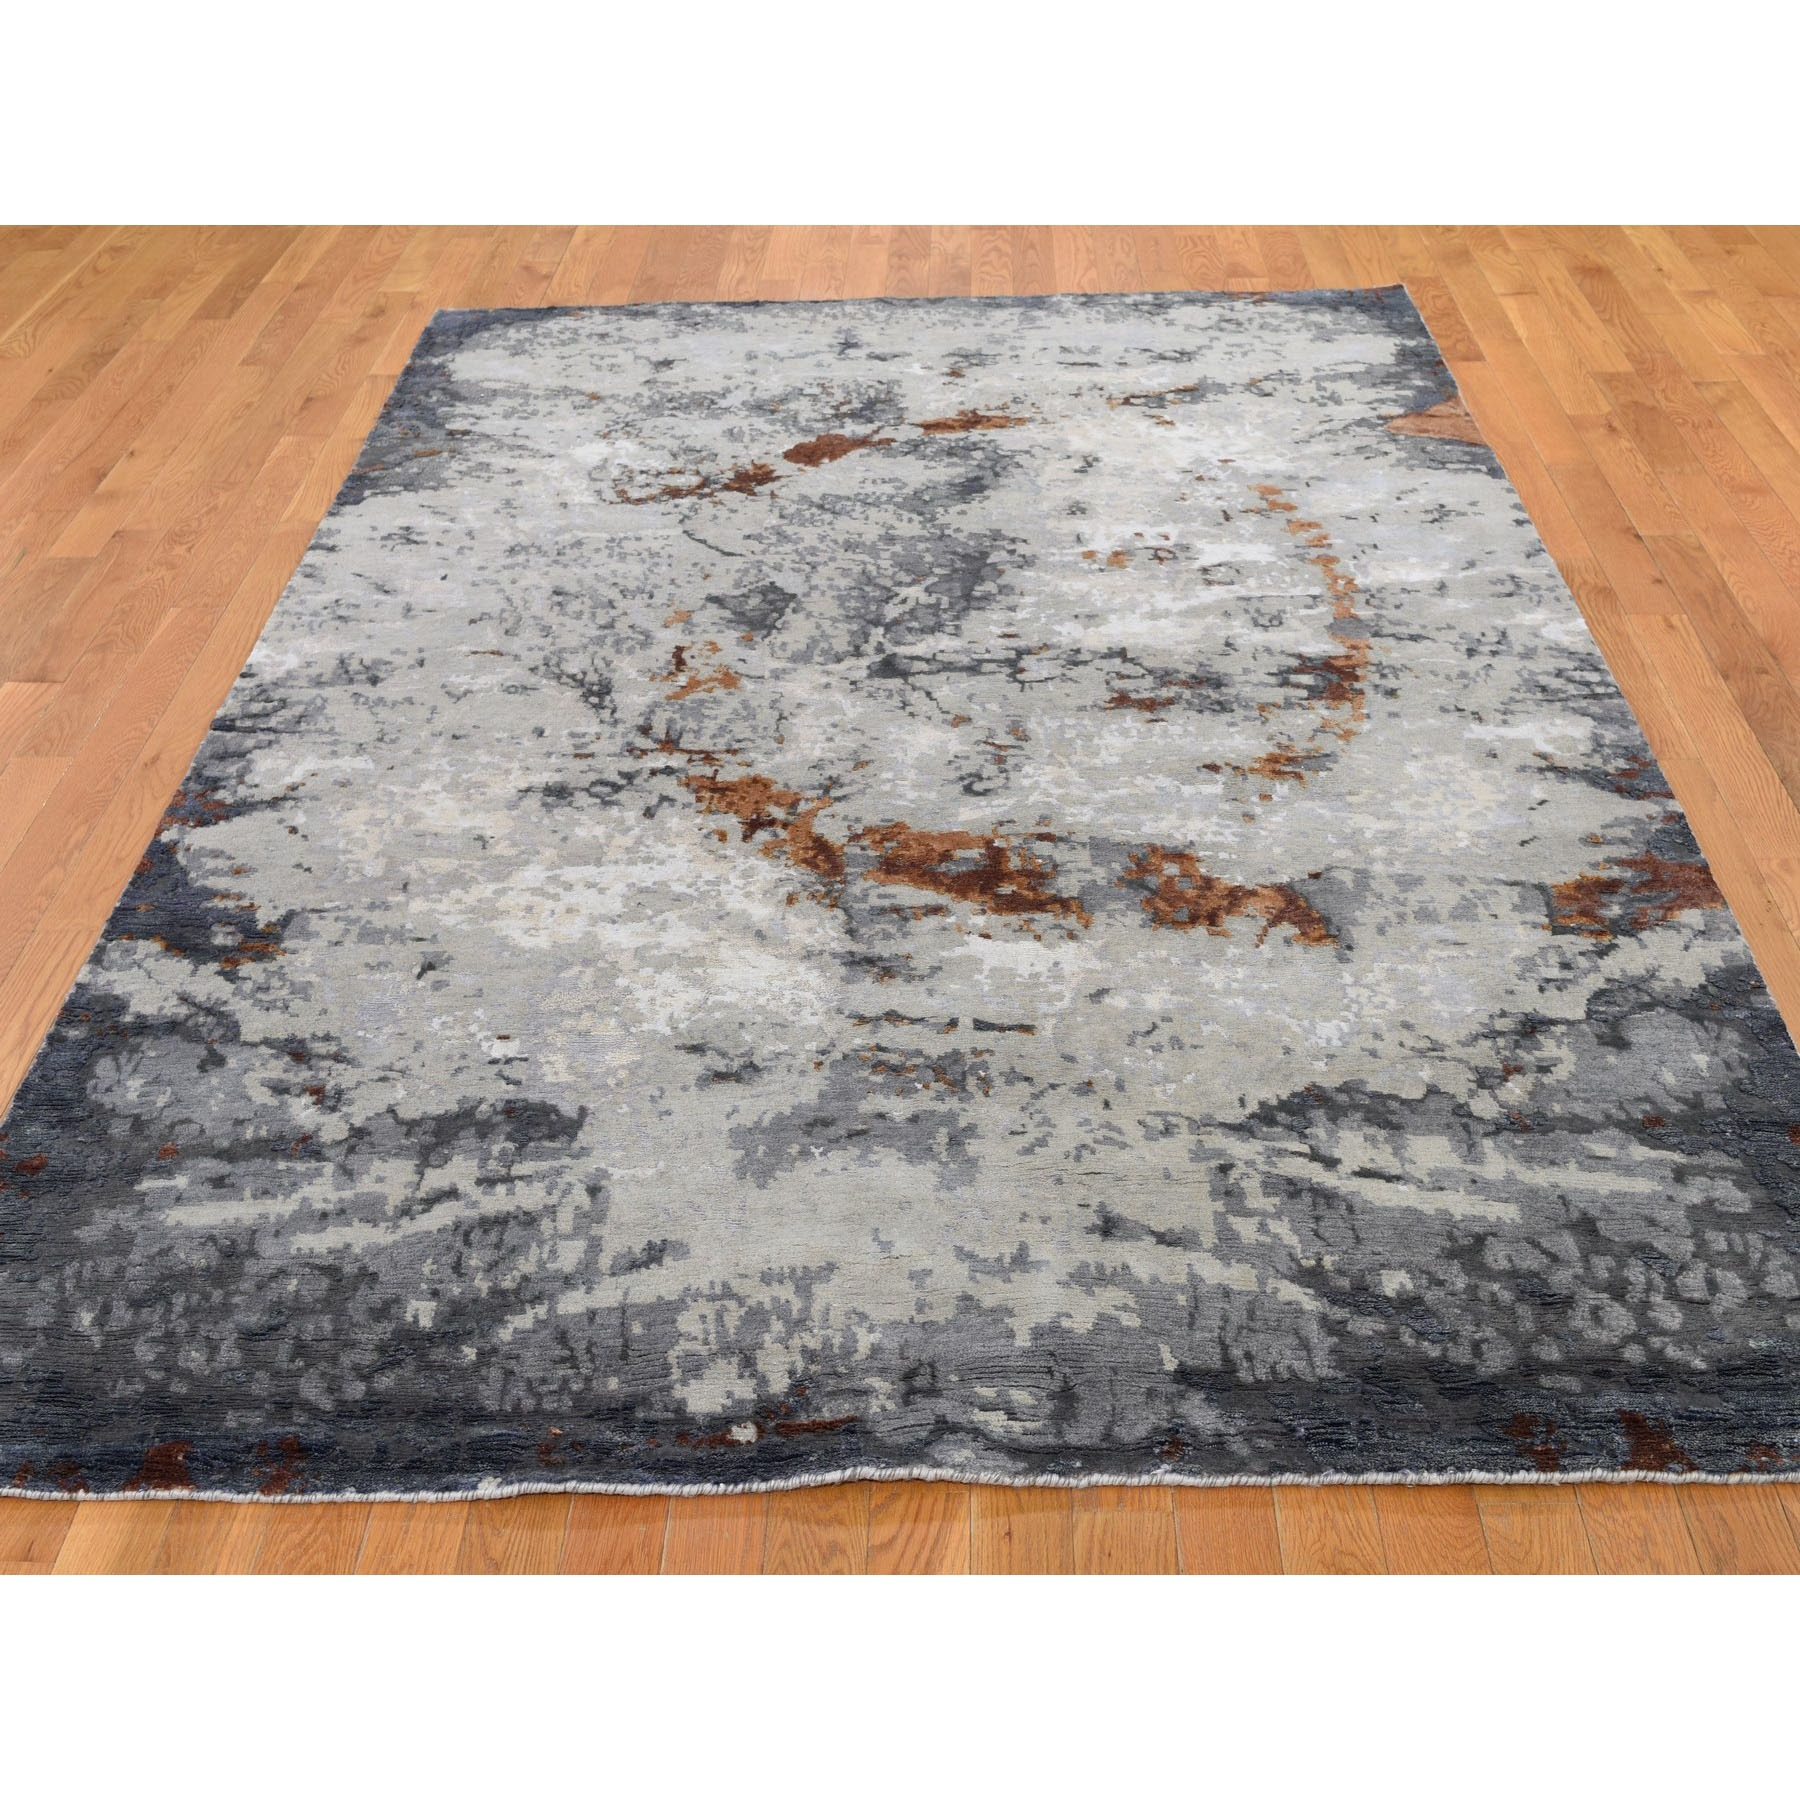 "6'x9'1"" Hi-Low Pile Abstract Design Wool And Silk Hand Knotted Oriental Rug"